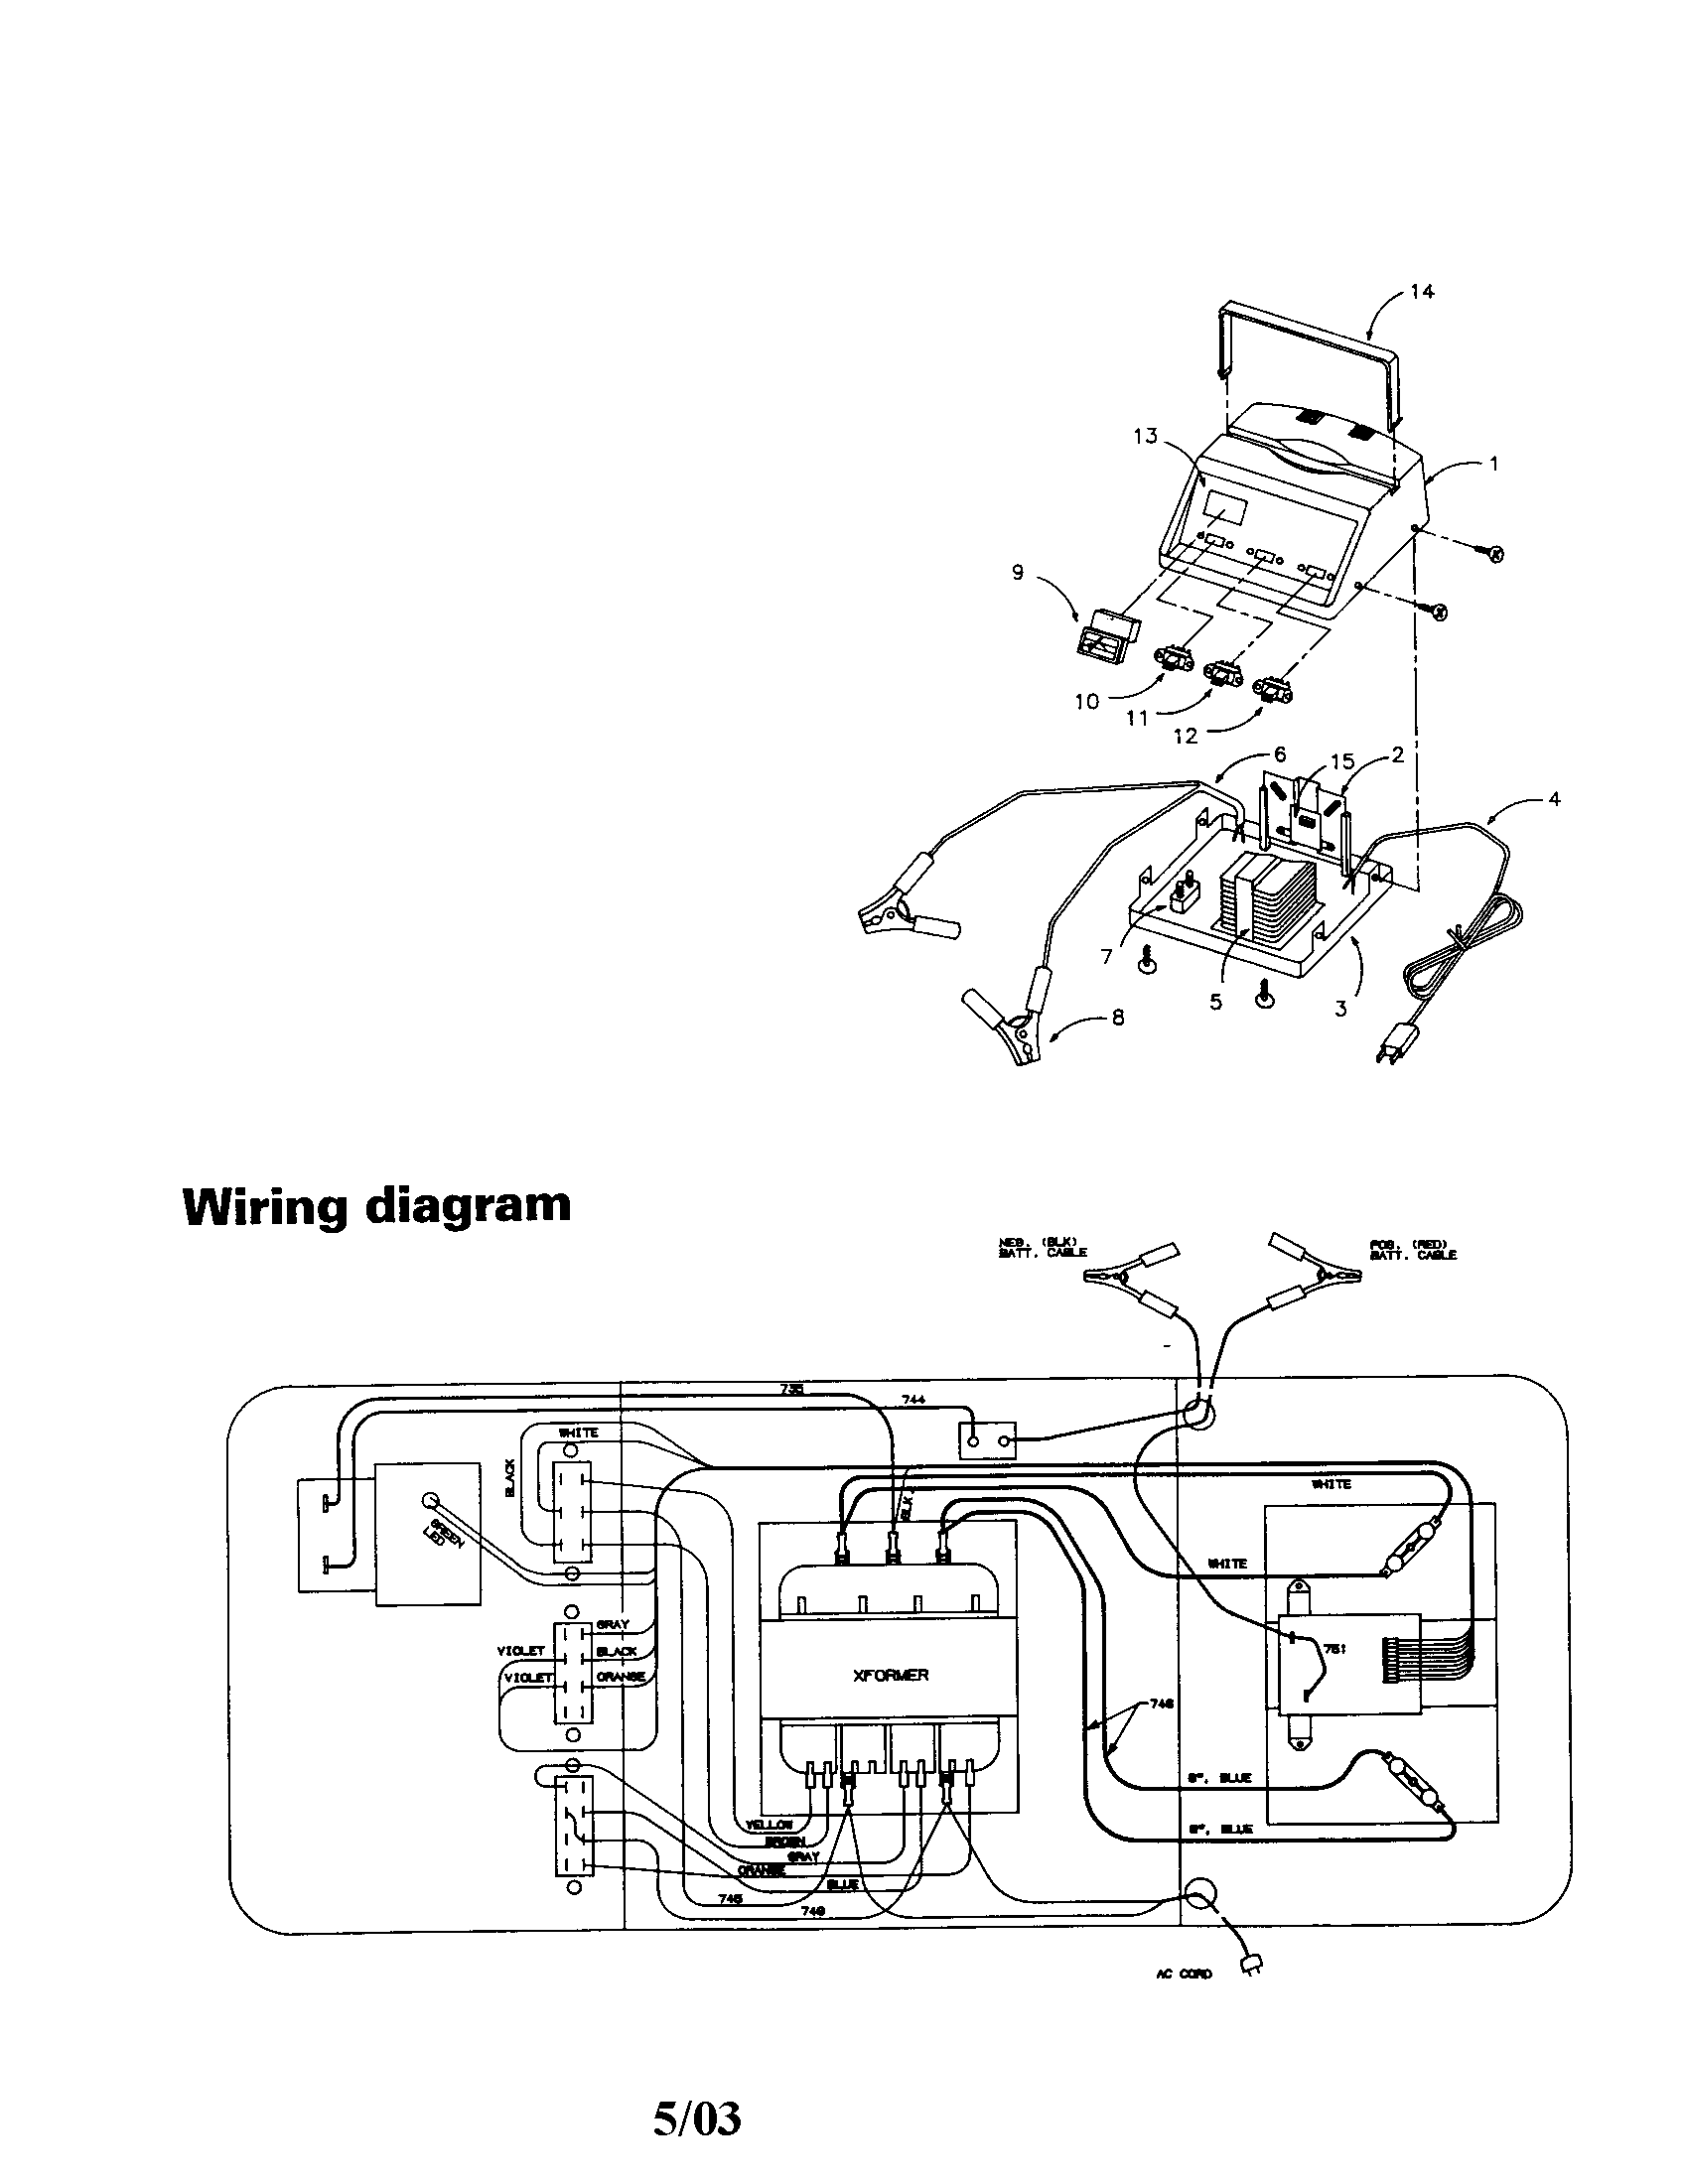 Sears Battery Charger Wiring Diagram. Diagram. Wiring